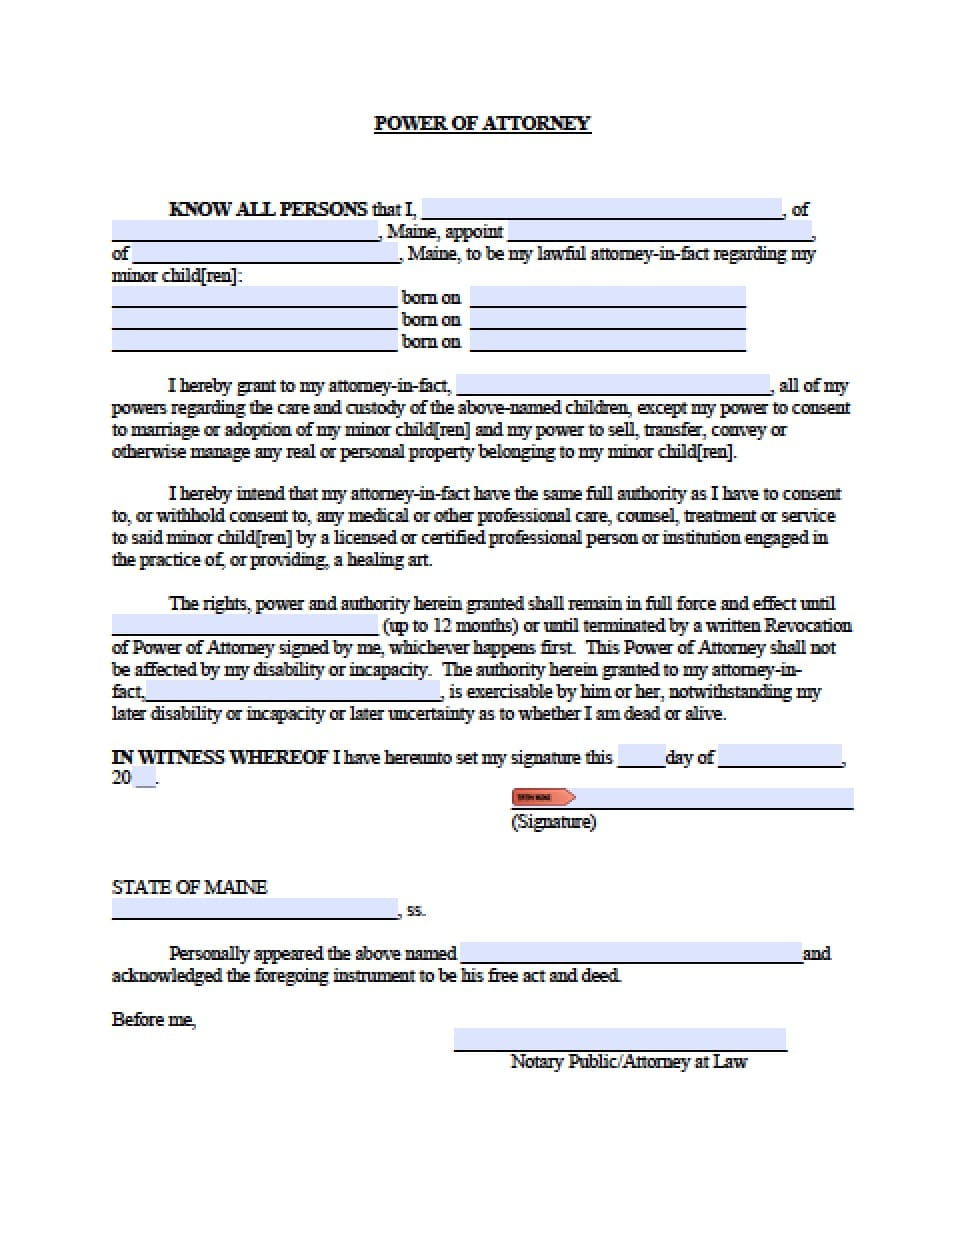 Maine Minor Child Power of Attorney Form - Power of Attorney ...